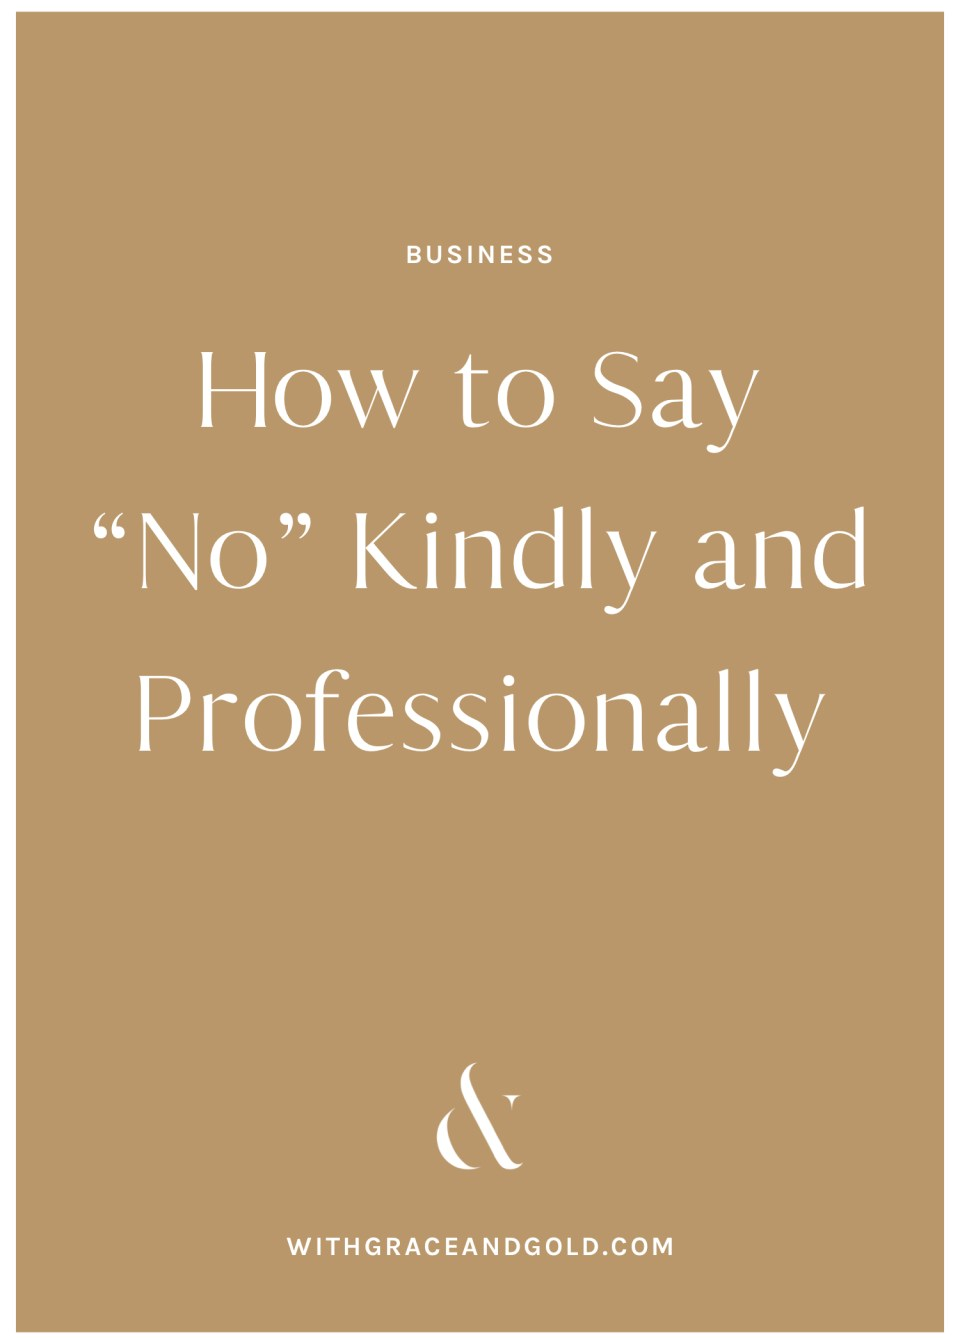 How to Say No Kindly and Professionally